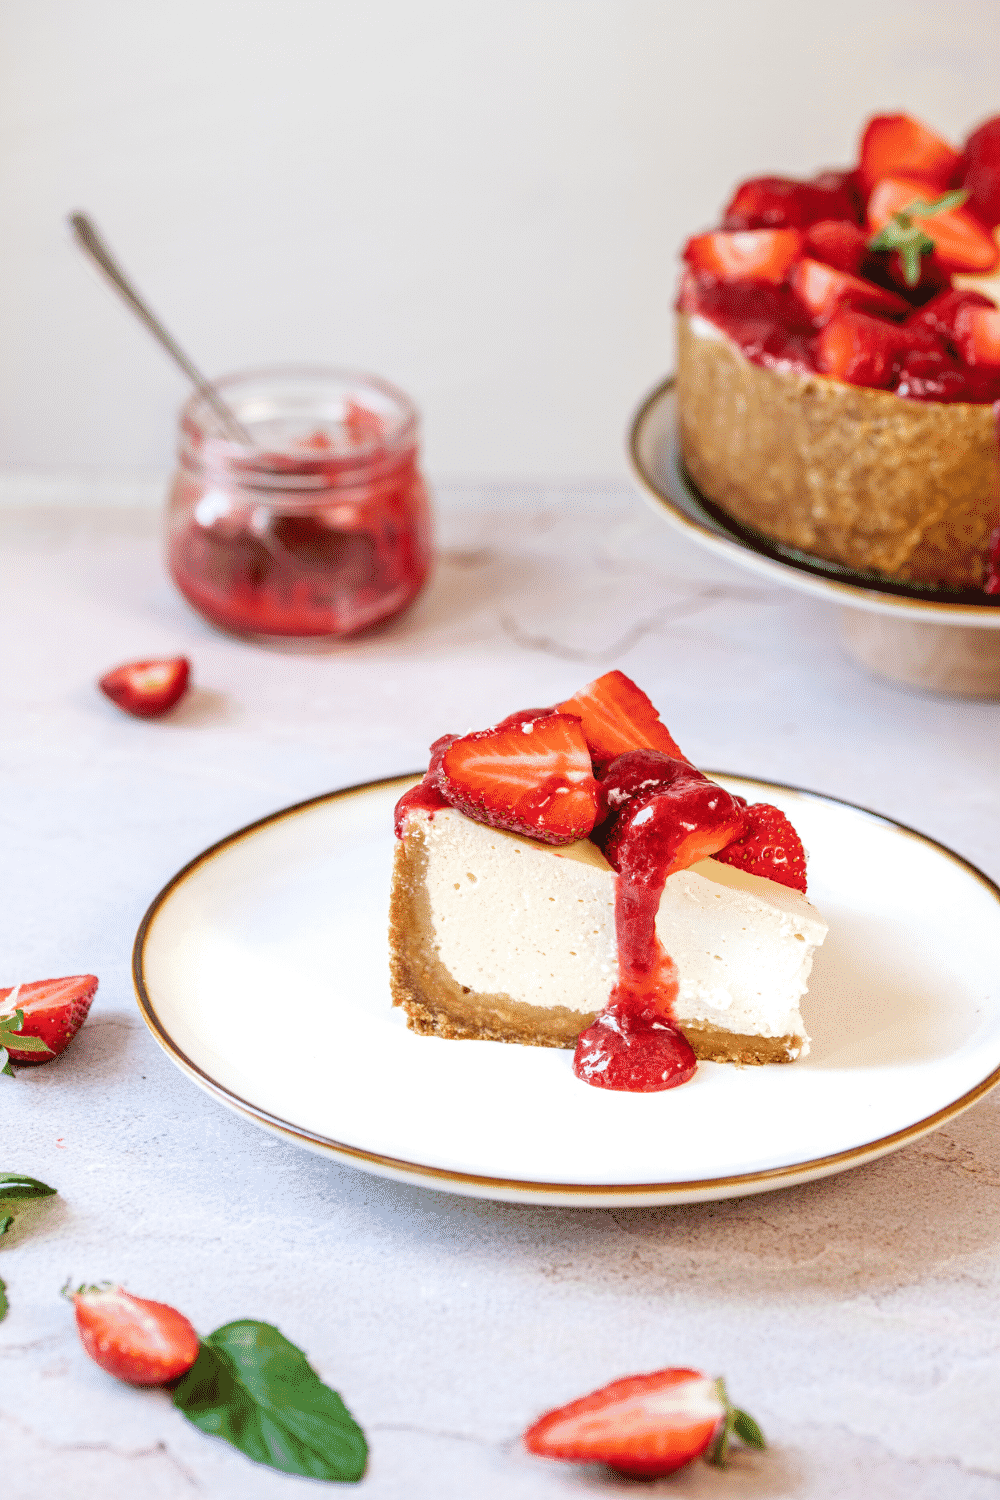 A piece of strawberry cheesecake on a white plate. Part of the strawberry cheesecake is showing behind the plate on the white counter..